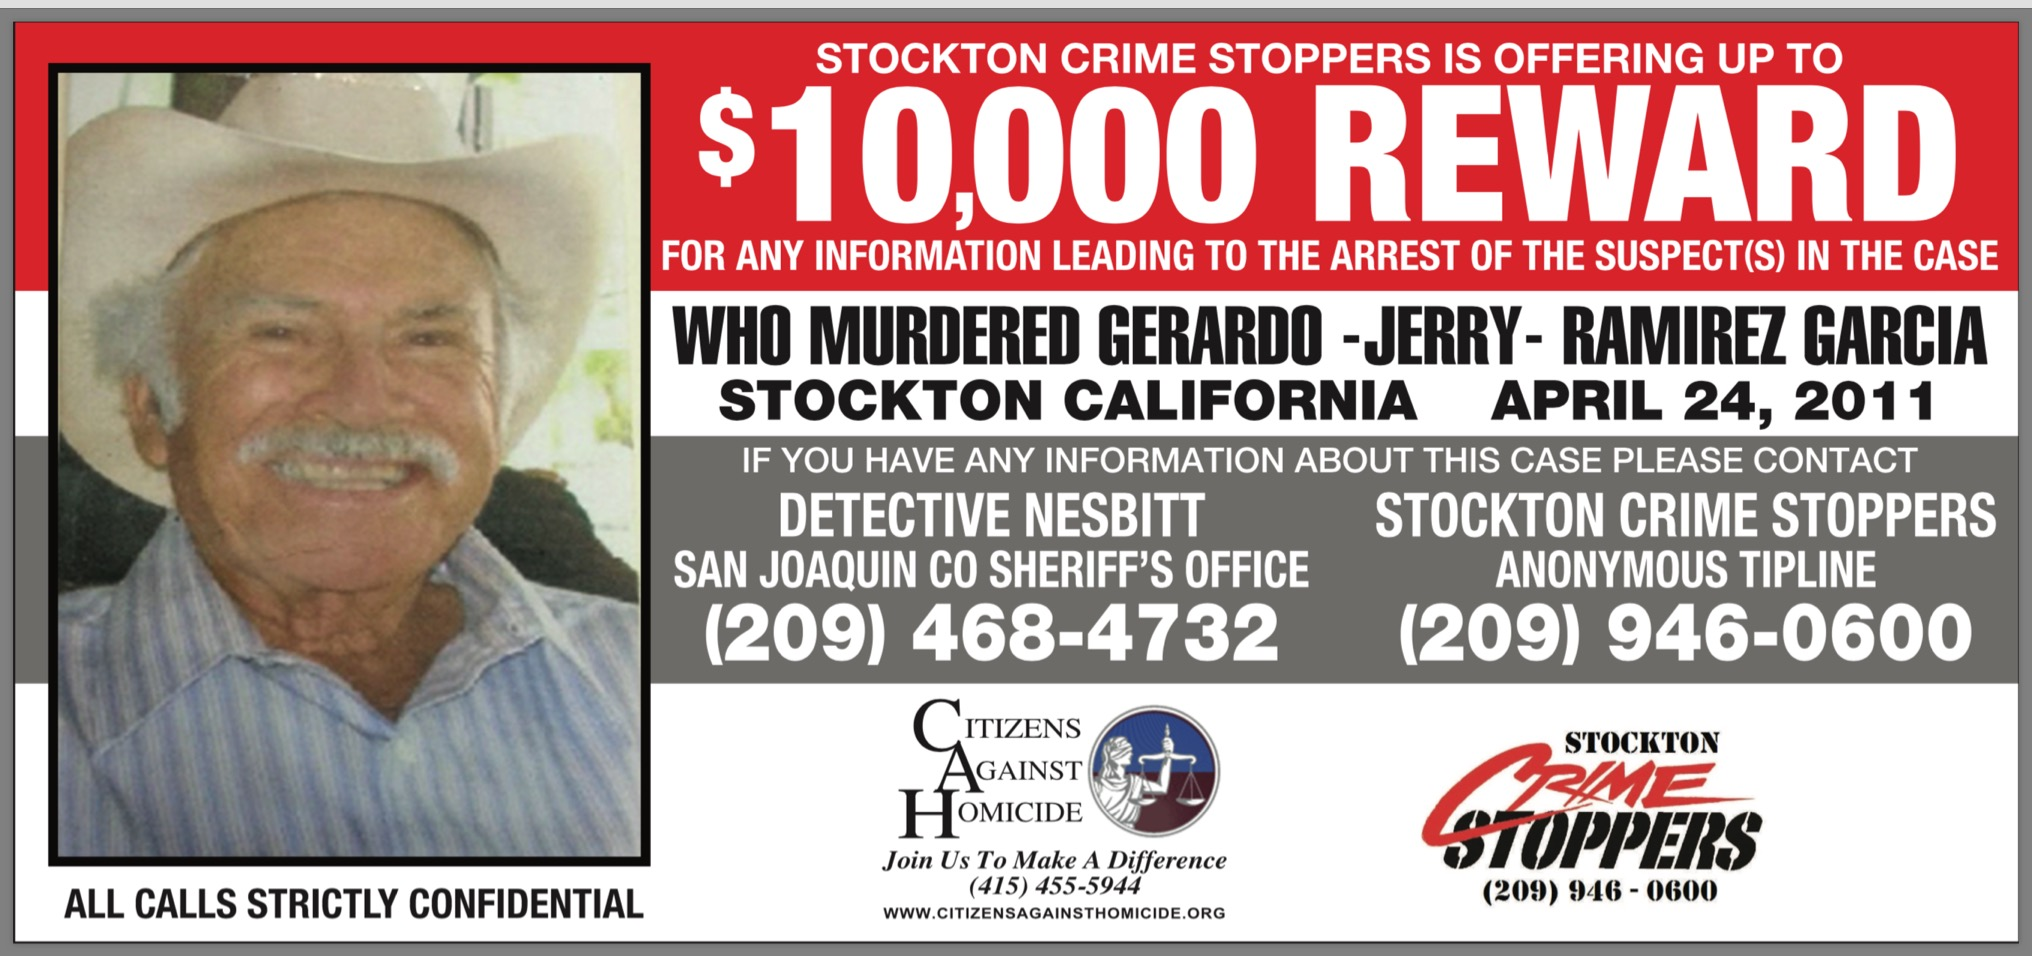 Up to $10,000 Reward for information leading to an arrest and conviction for the murder of Gerardo Jerry Ramirez Garcia